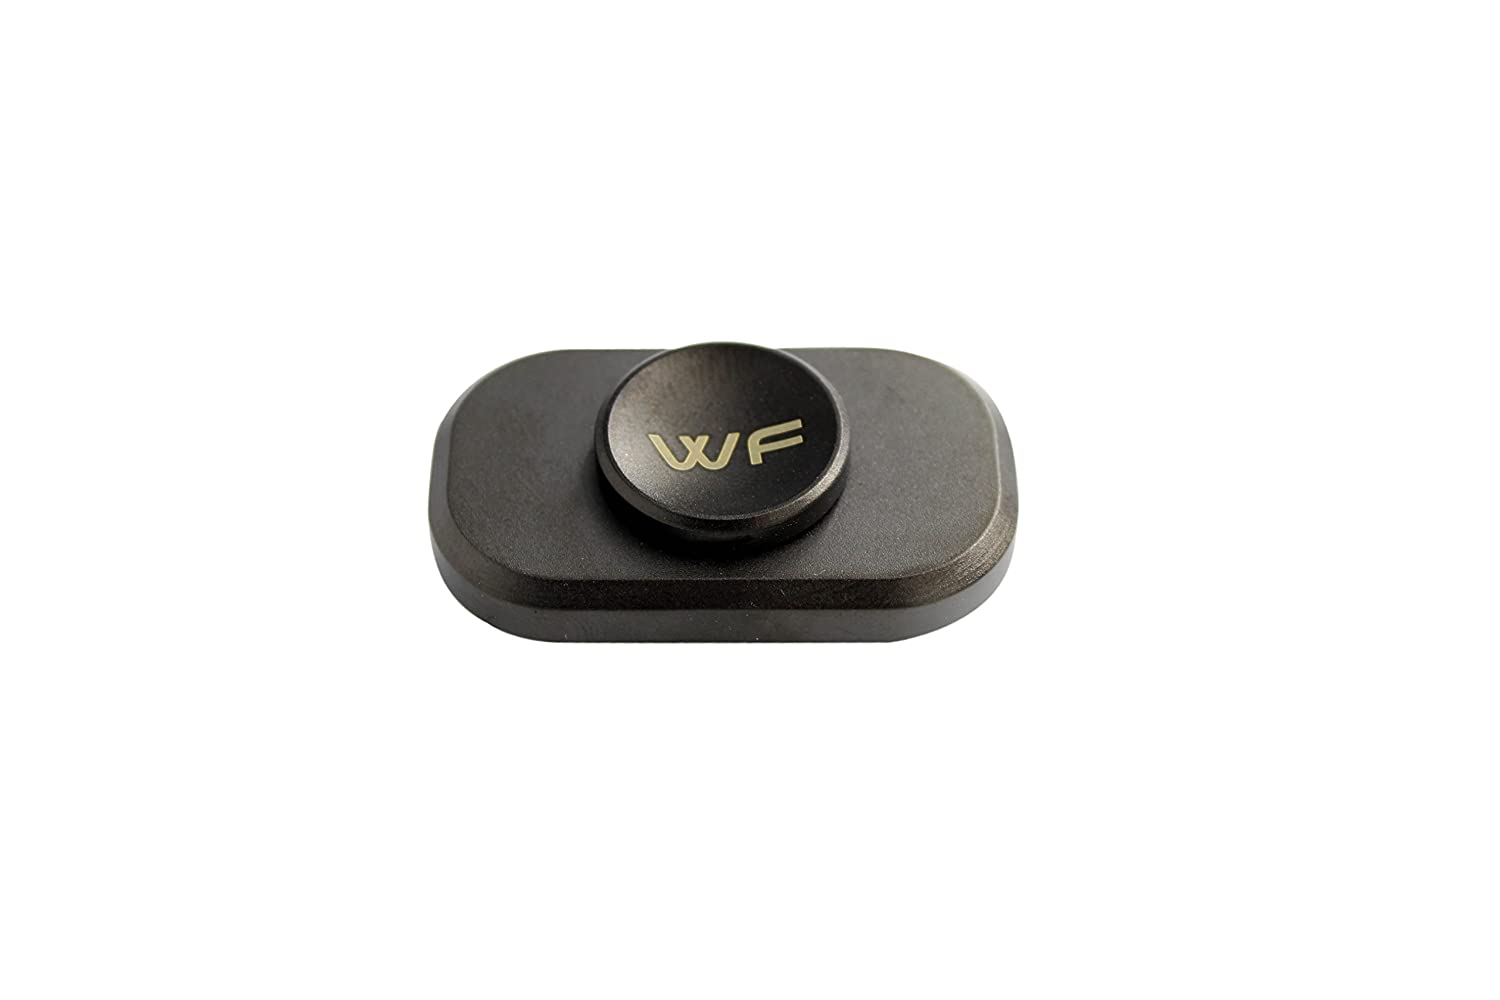 WeFidget Original Mini The Bar Premium Hand Fidget Spinner, Designed for Stress and Anxiety Relief. Metal Travel Case Included